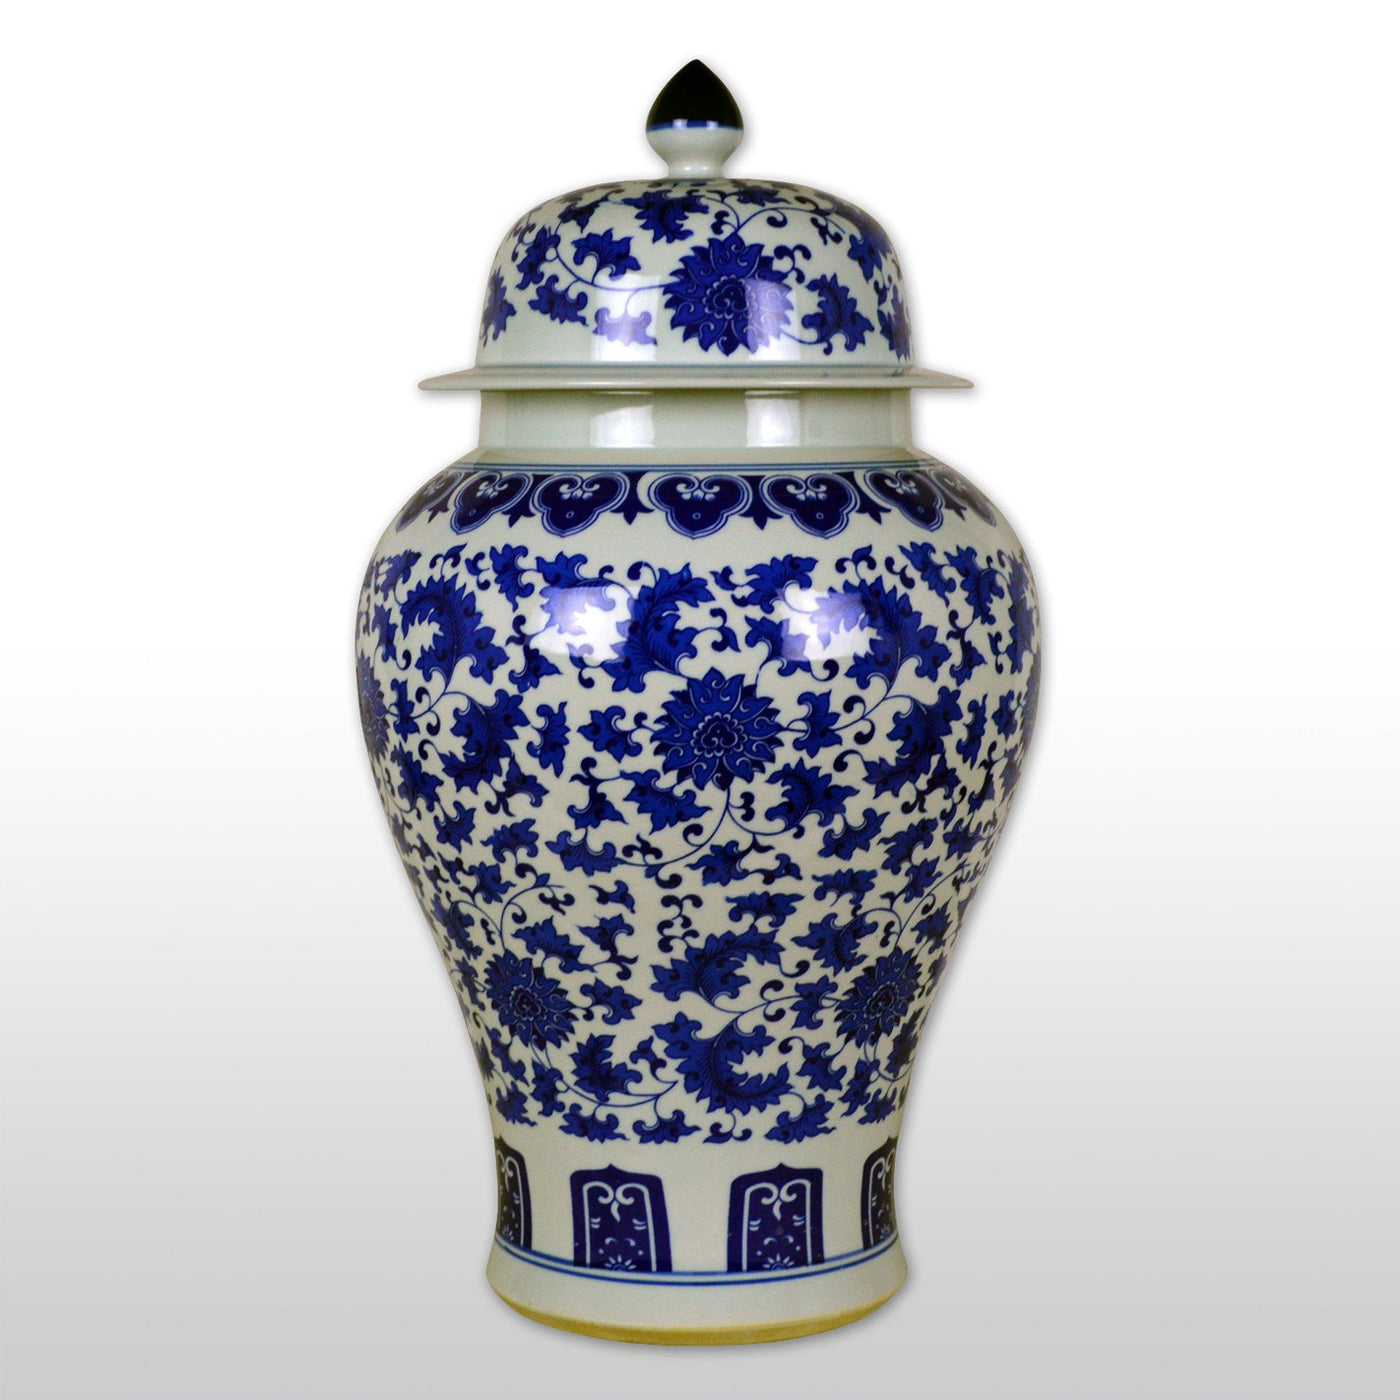 Oriental chinese porcelain floor jar 21 in floral blue and white featured products vases jars 21 chinese blue and white porcelain floor jar reviewsmspy